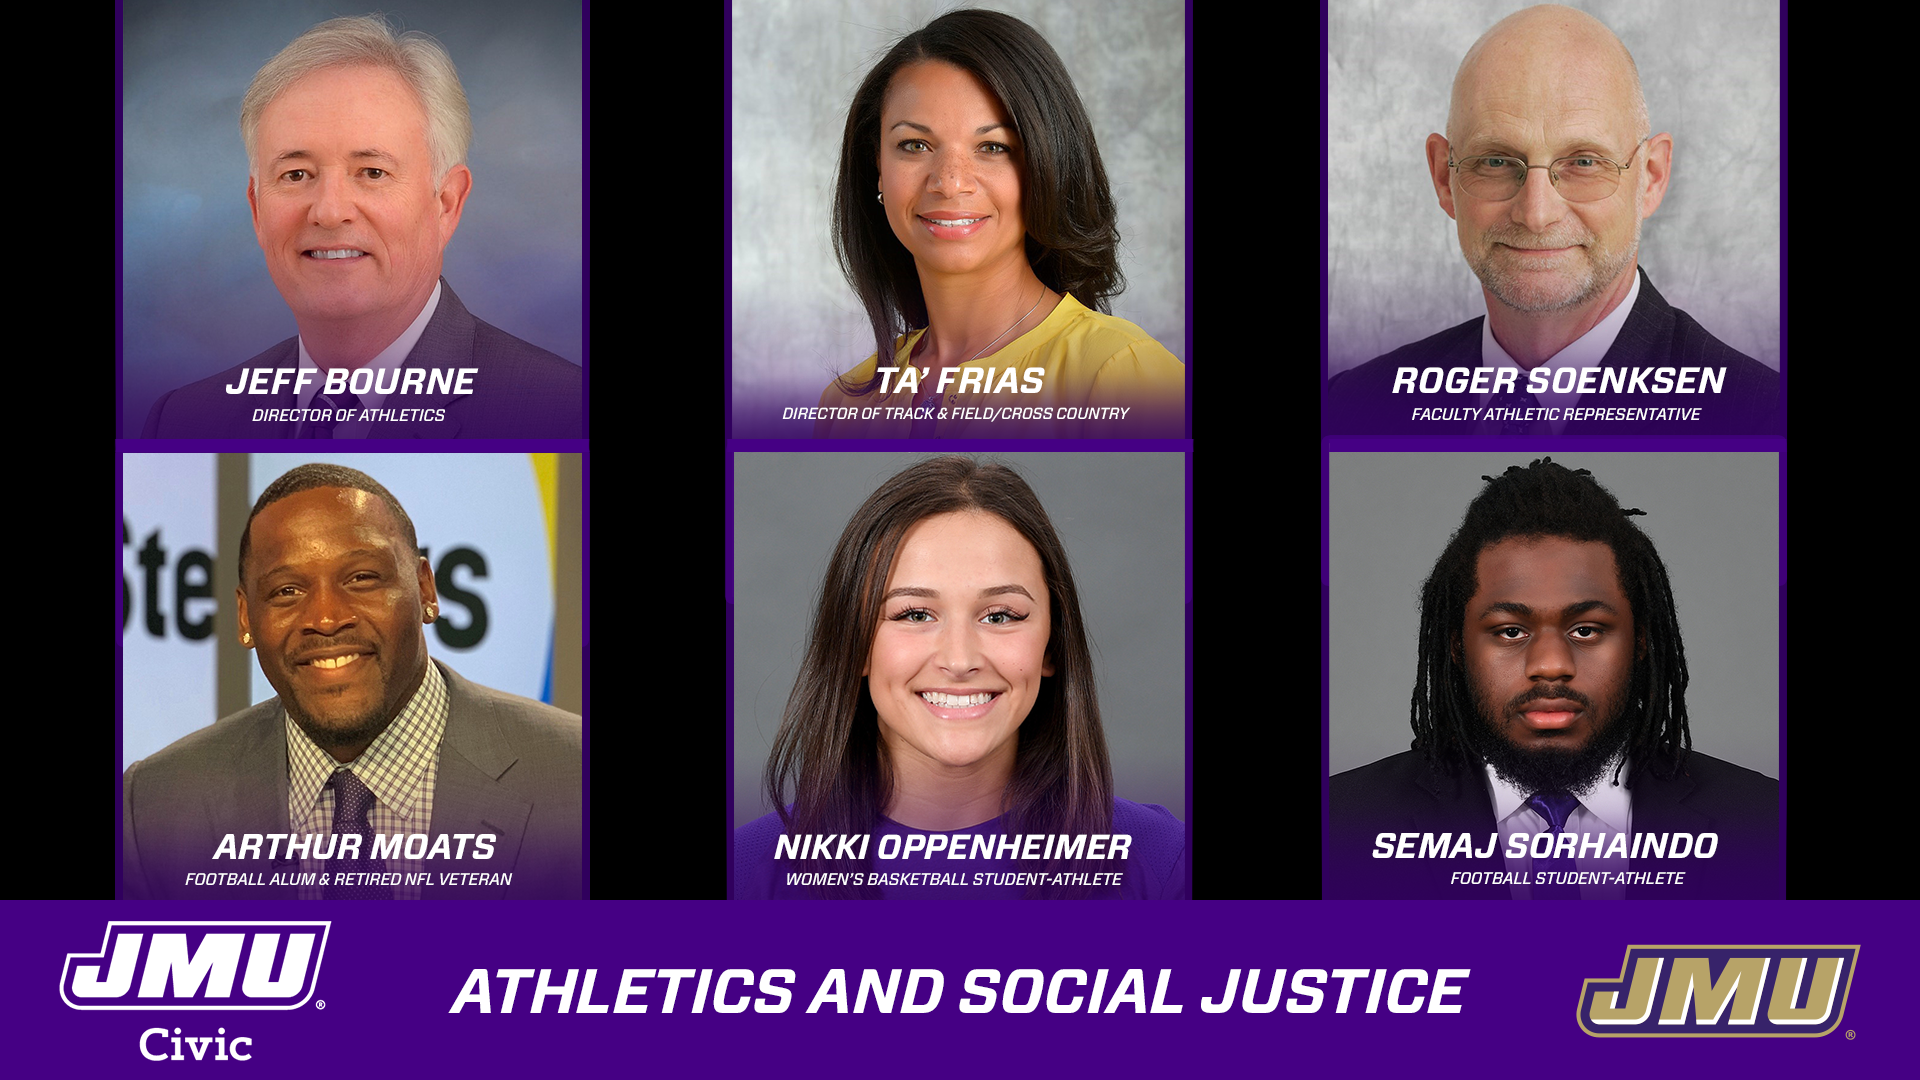 Athletics_SocialJustice2.png